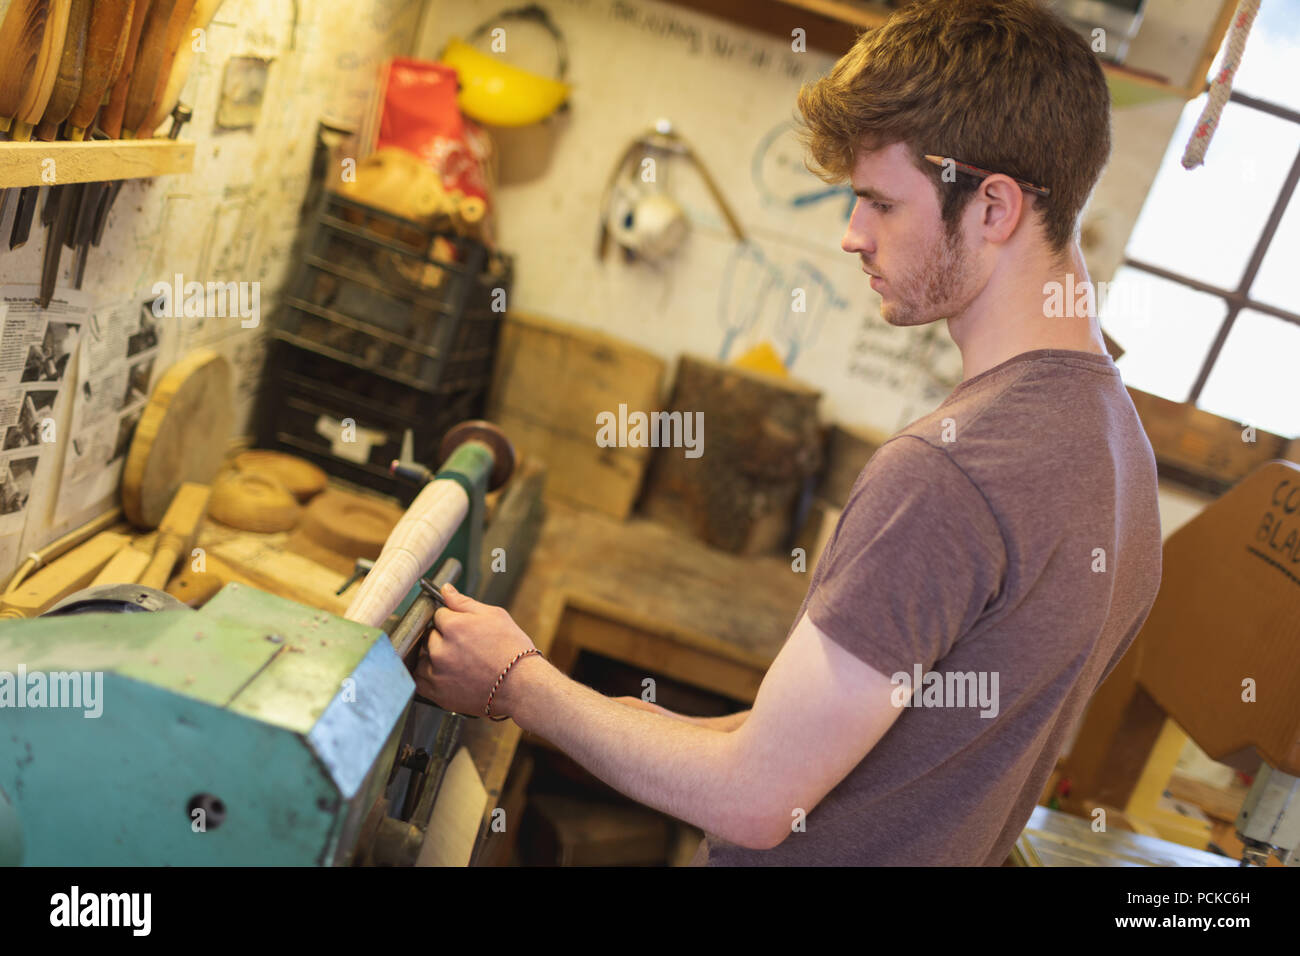 Male carpenter sharping tool on machine - Stock Image